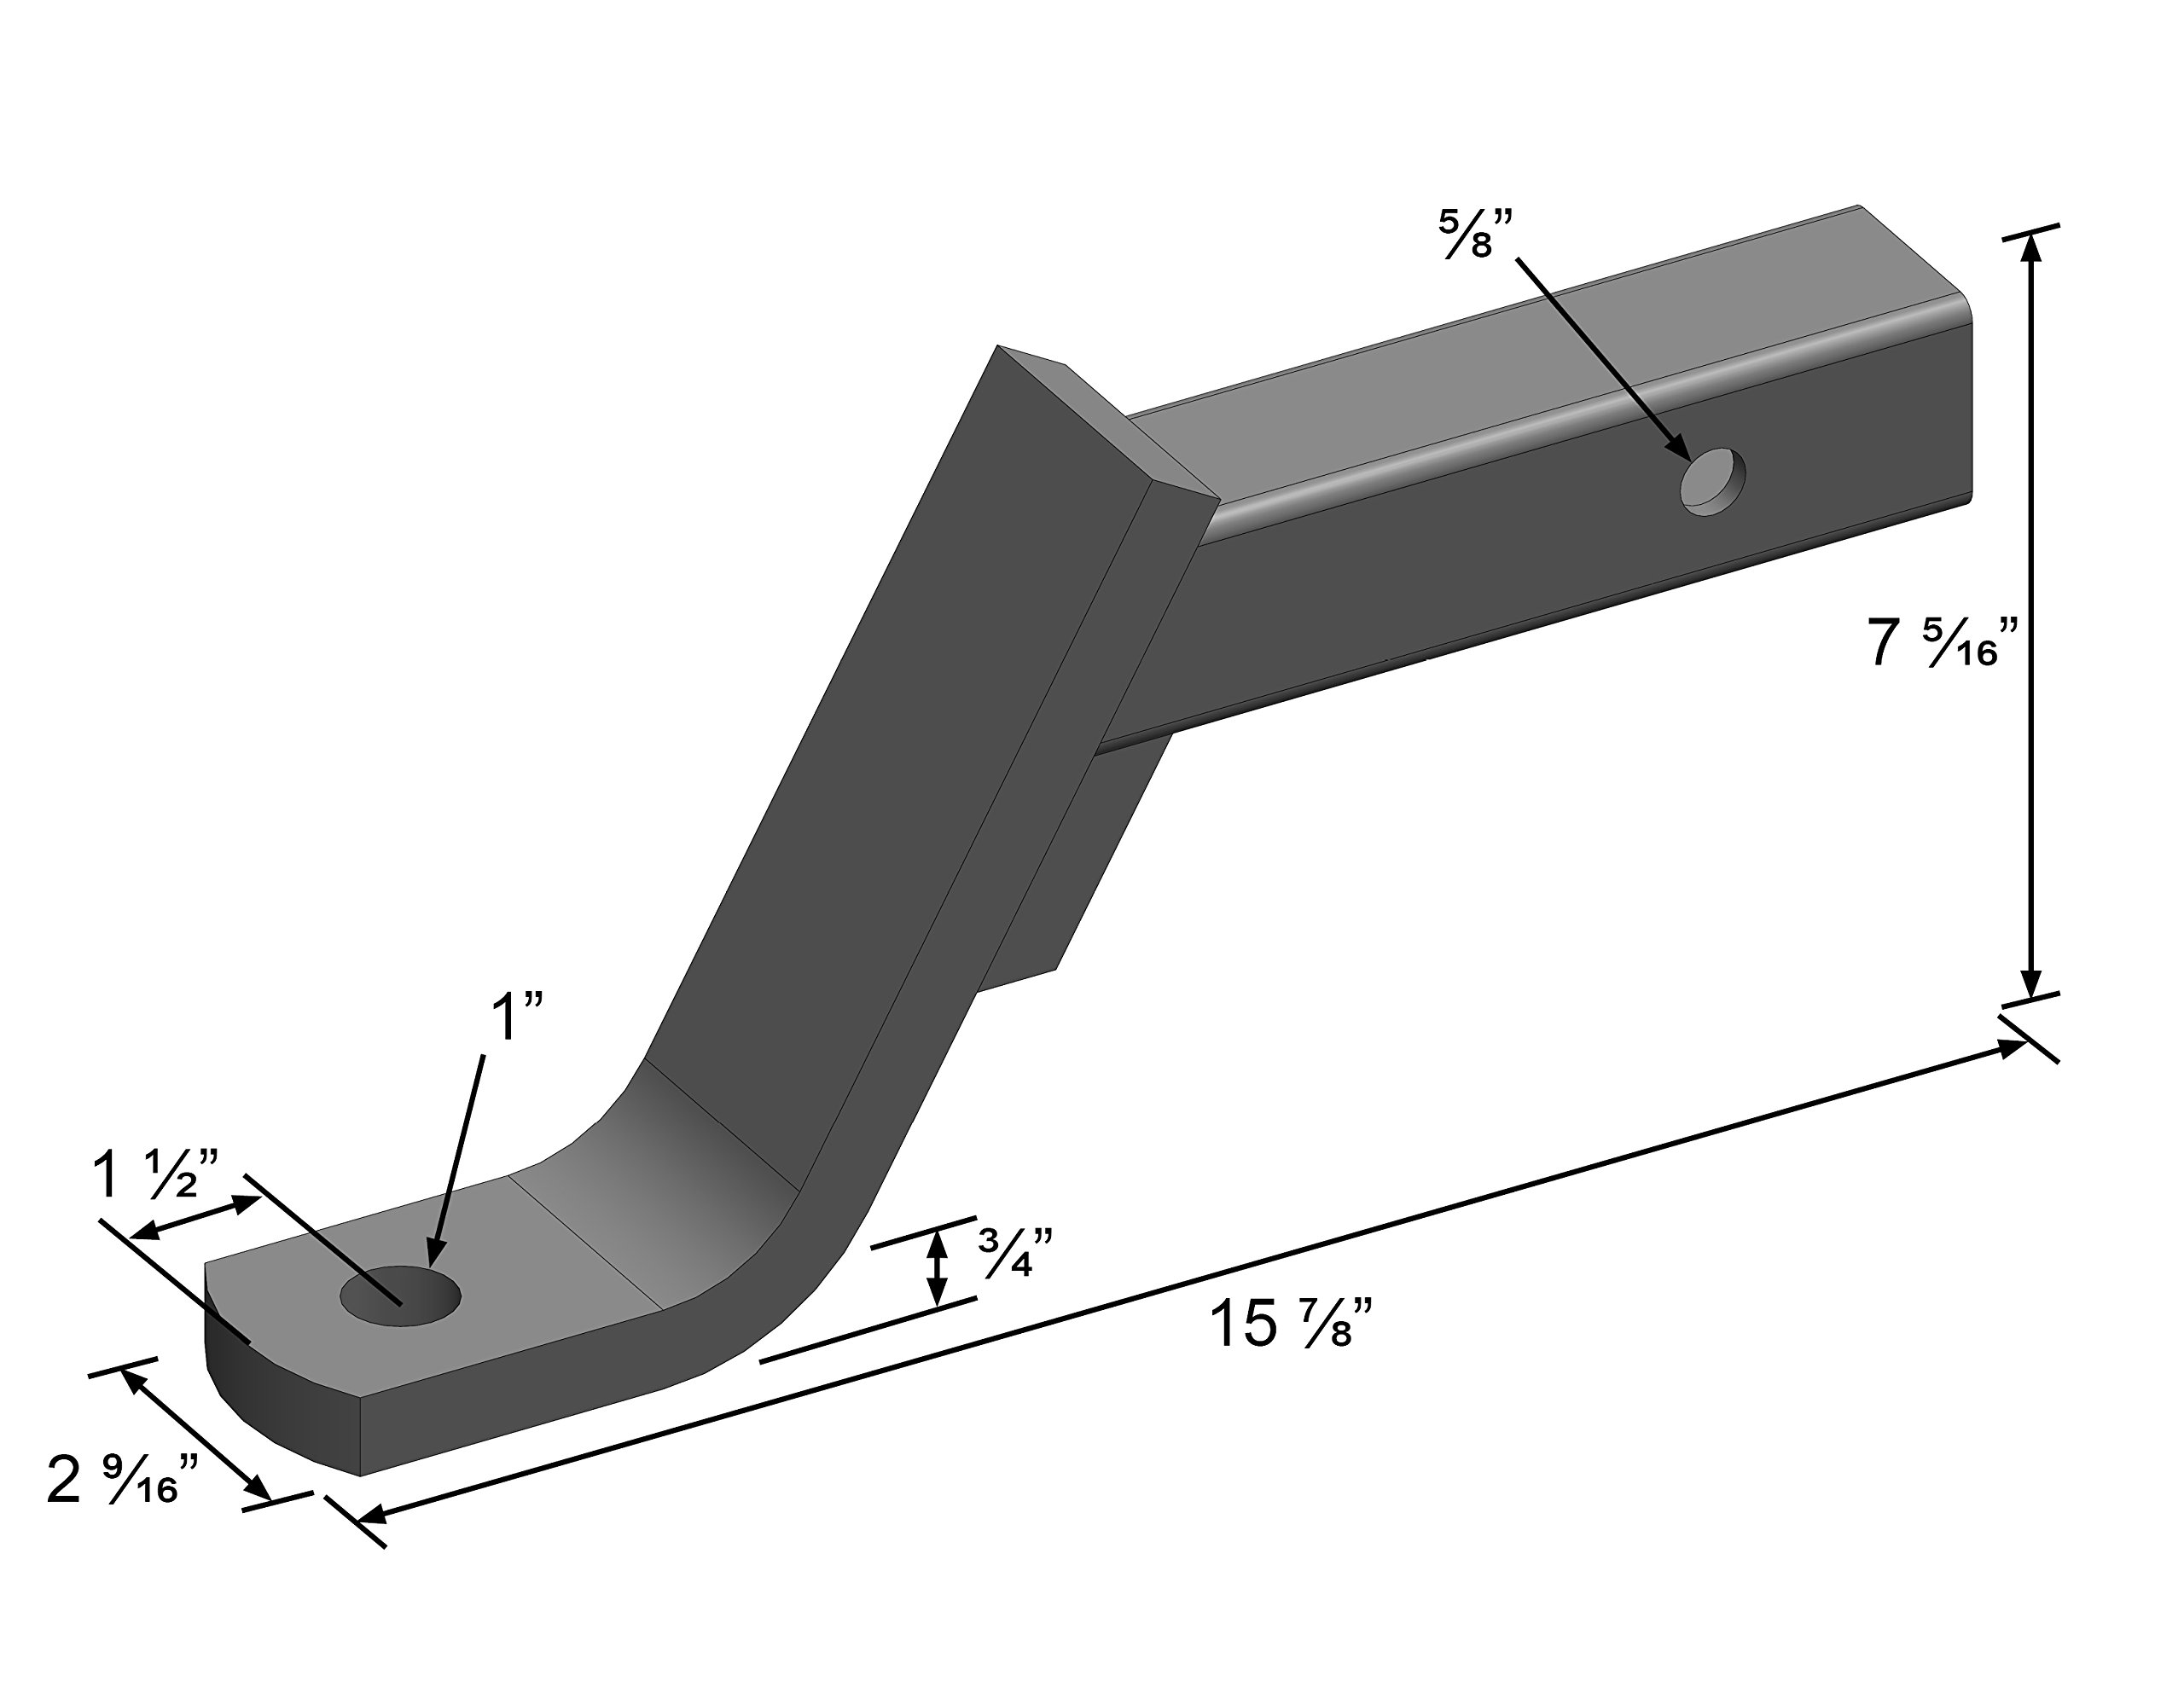 Quick Products QP-HS2807 Class III Trailer Ball Mount - 6'' Drop, 4'' Rise - 5000 lbs. (Gloss Black Powder-Coat Finish) by Quick Products (Image #2)